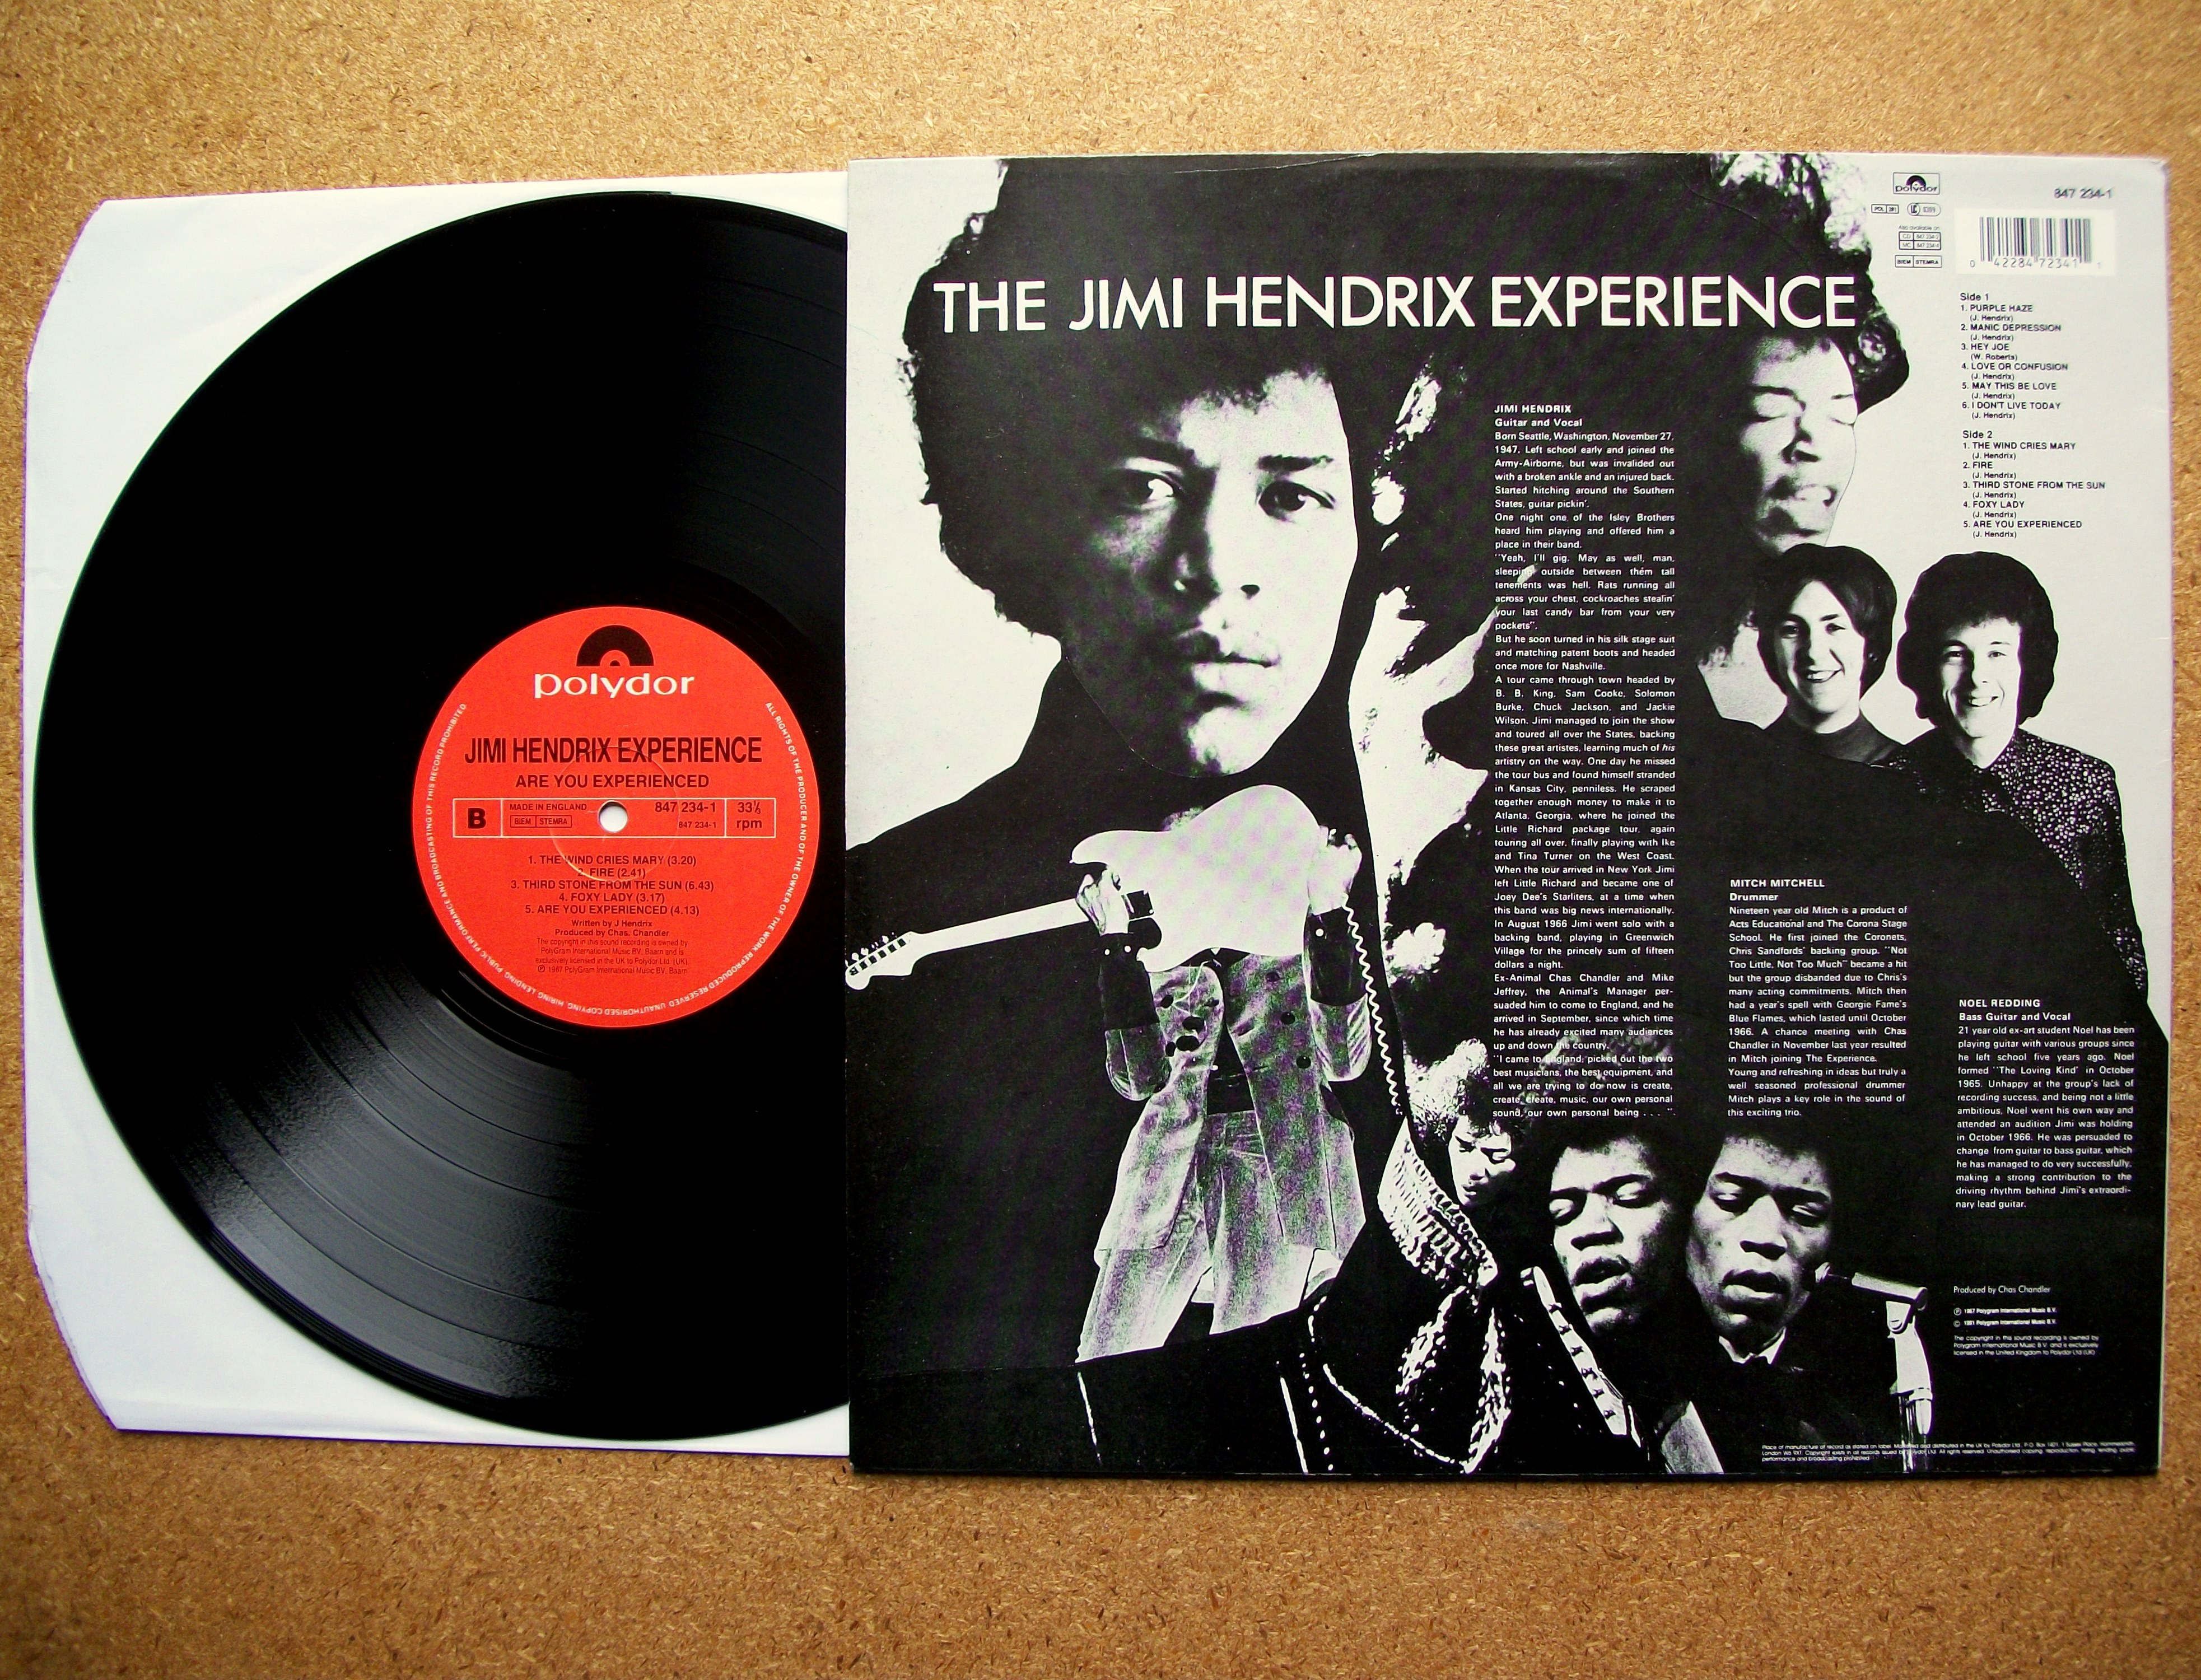 a review of the album are you experienced by the jimi hendrix experience The official youtube home of jimi hendrix skip navigation sign in search jimi hendrix videos playlists both sides of the sky is the new jimi hendrix album coming march 9 live concert recording of the jimi hendrix experience performing at regis college in denver, colorado on.